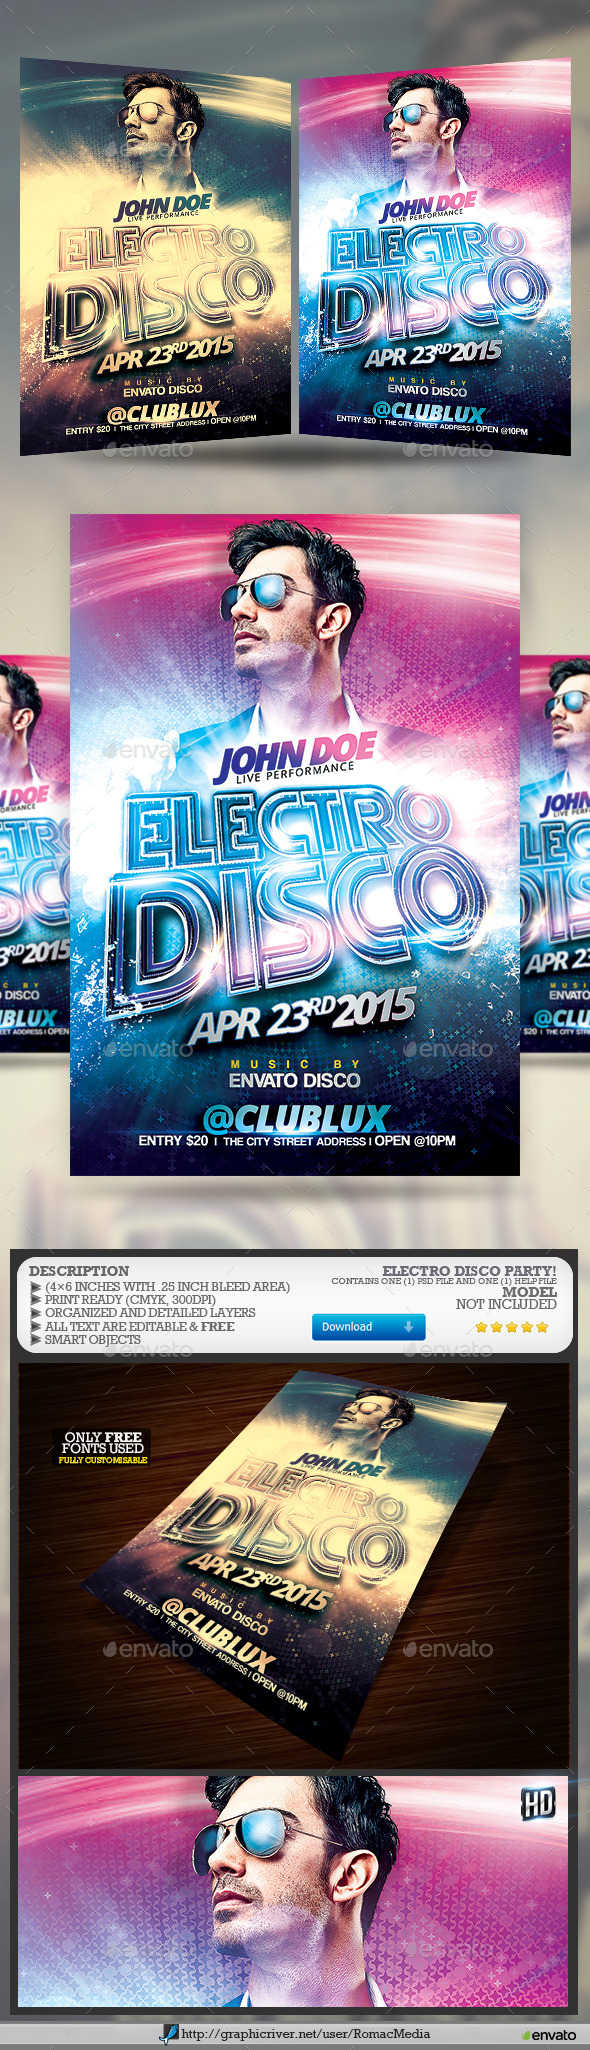 GraphicRiver DJ Electro Disco Party Flyer 10514111